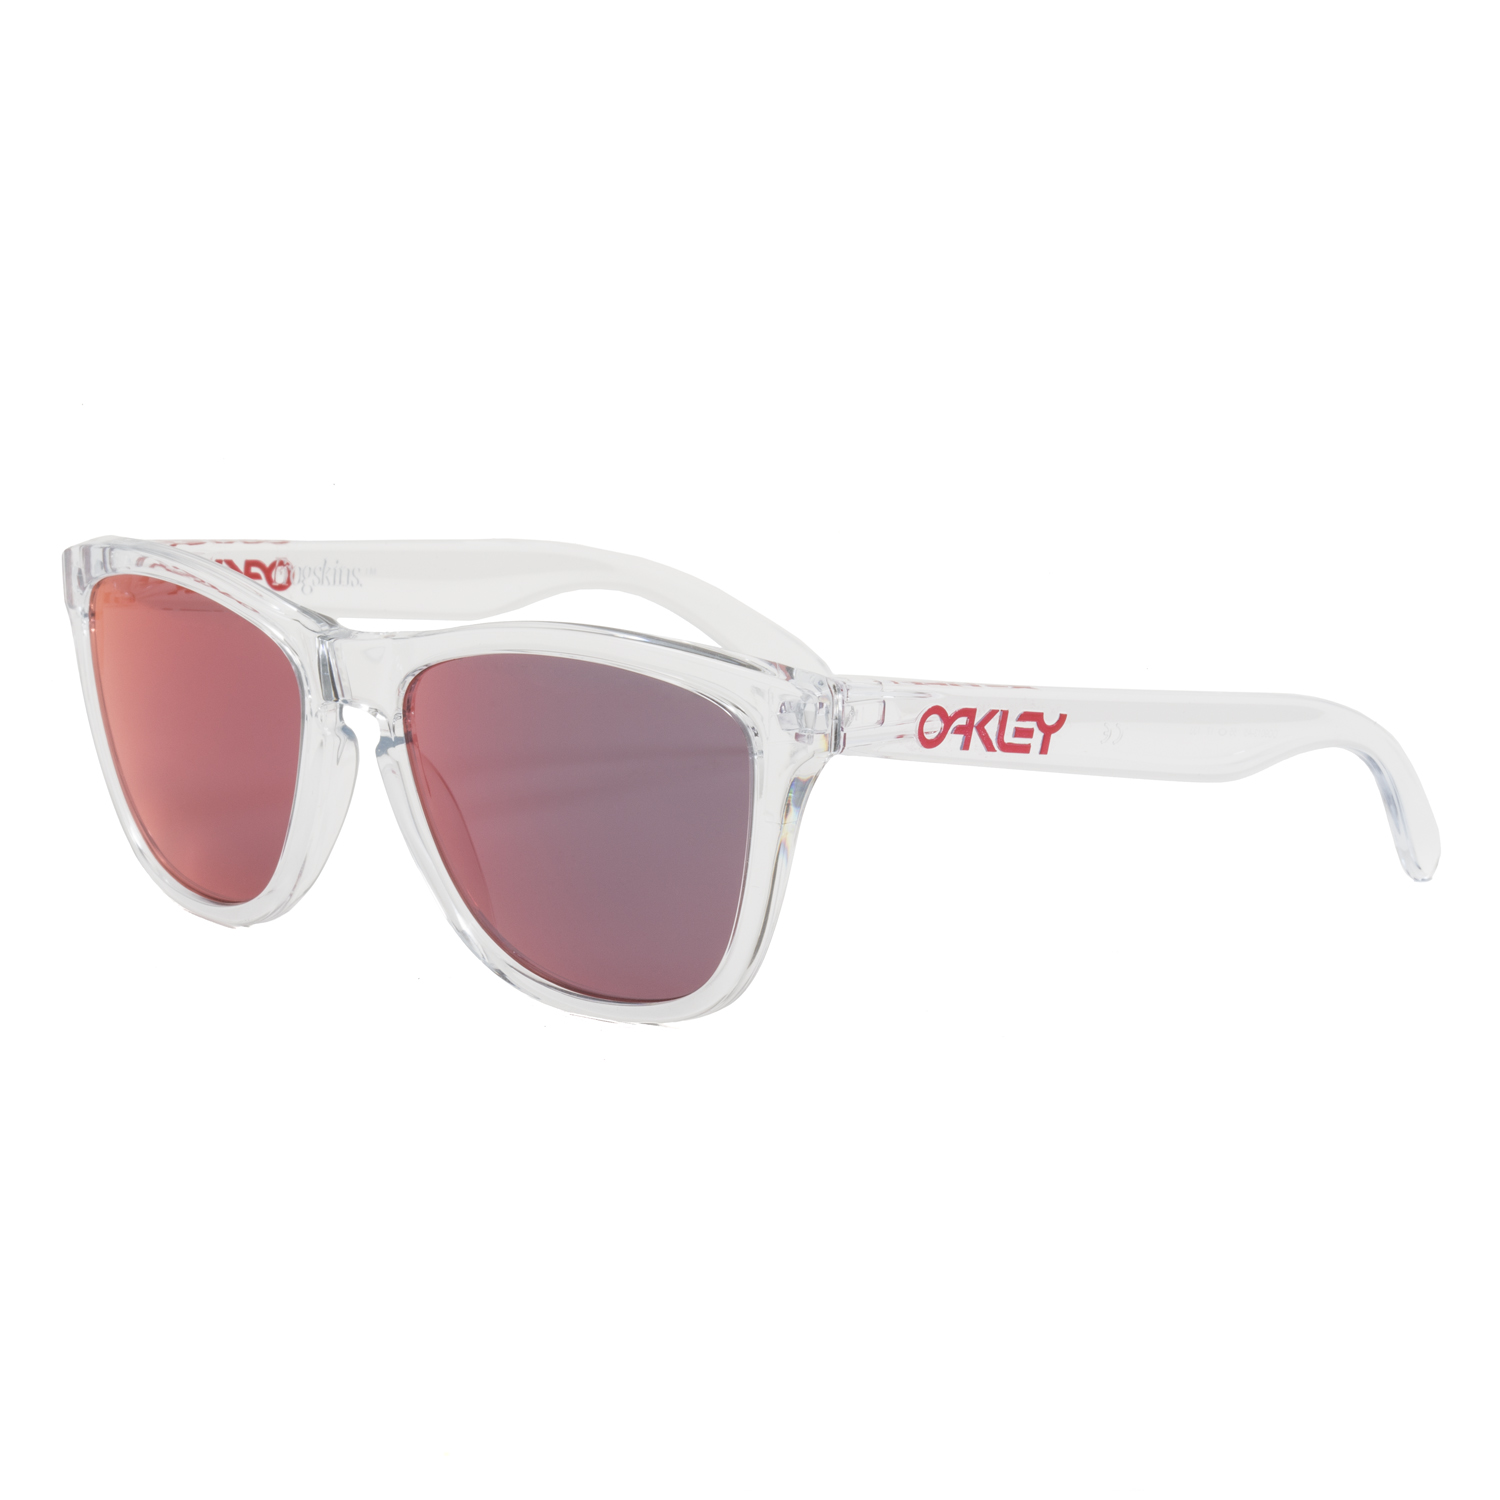 clear oakley frogskins 2ay1  Oakley Frogskins Crystal Sunglasses OO9013-A5 Clear / Torch Iridium Red  Mirrored